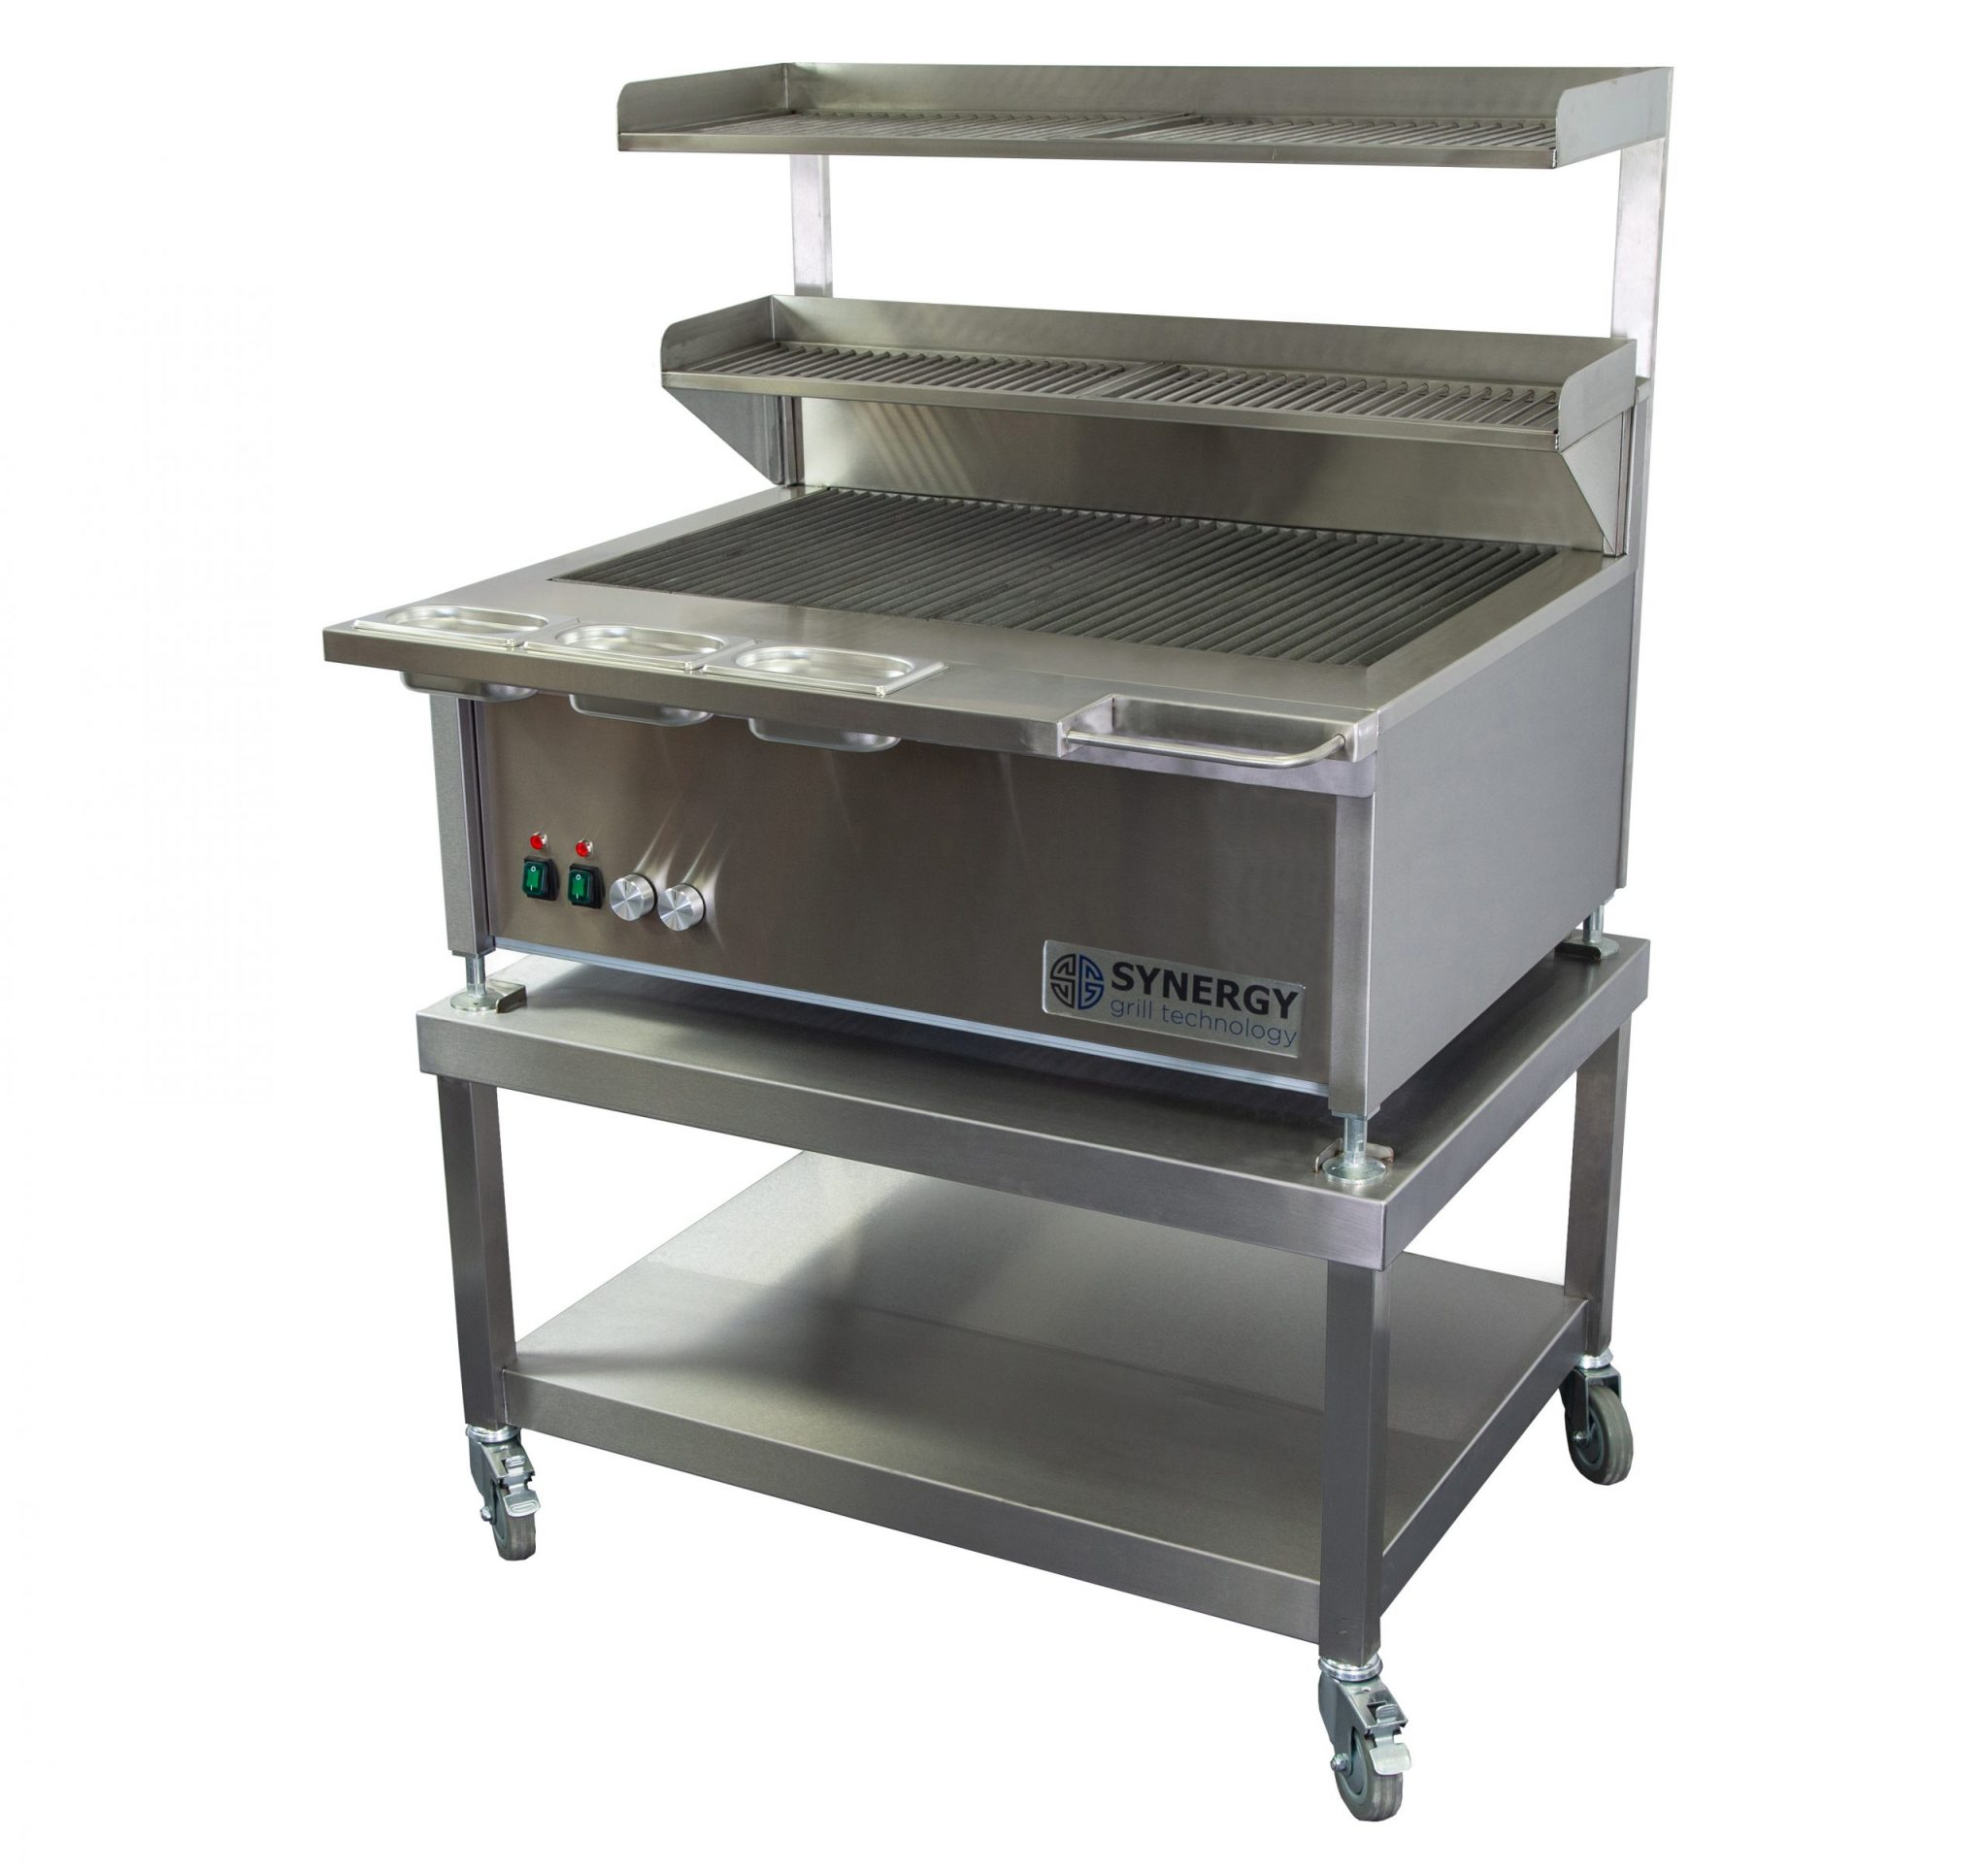 Synergy Grill Trilogy ST900D Silver with Mobile Table